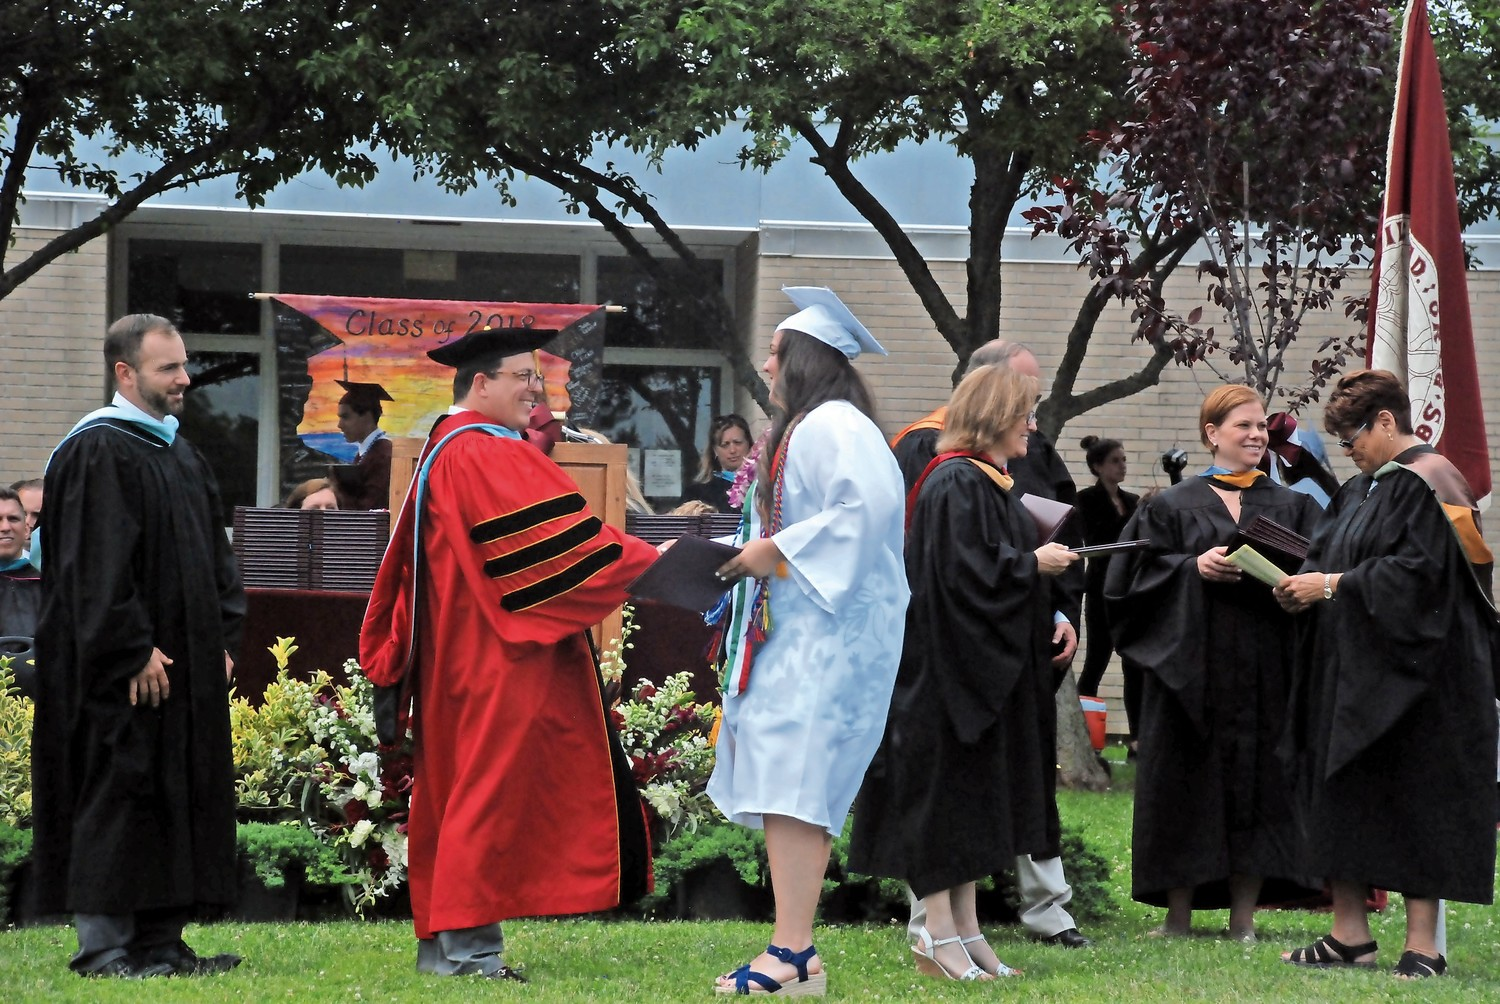 Lindsey Golden was congratulated by Superintendent Dr. Peter Giarrizzo after he presented her with her diploma.